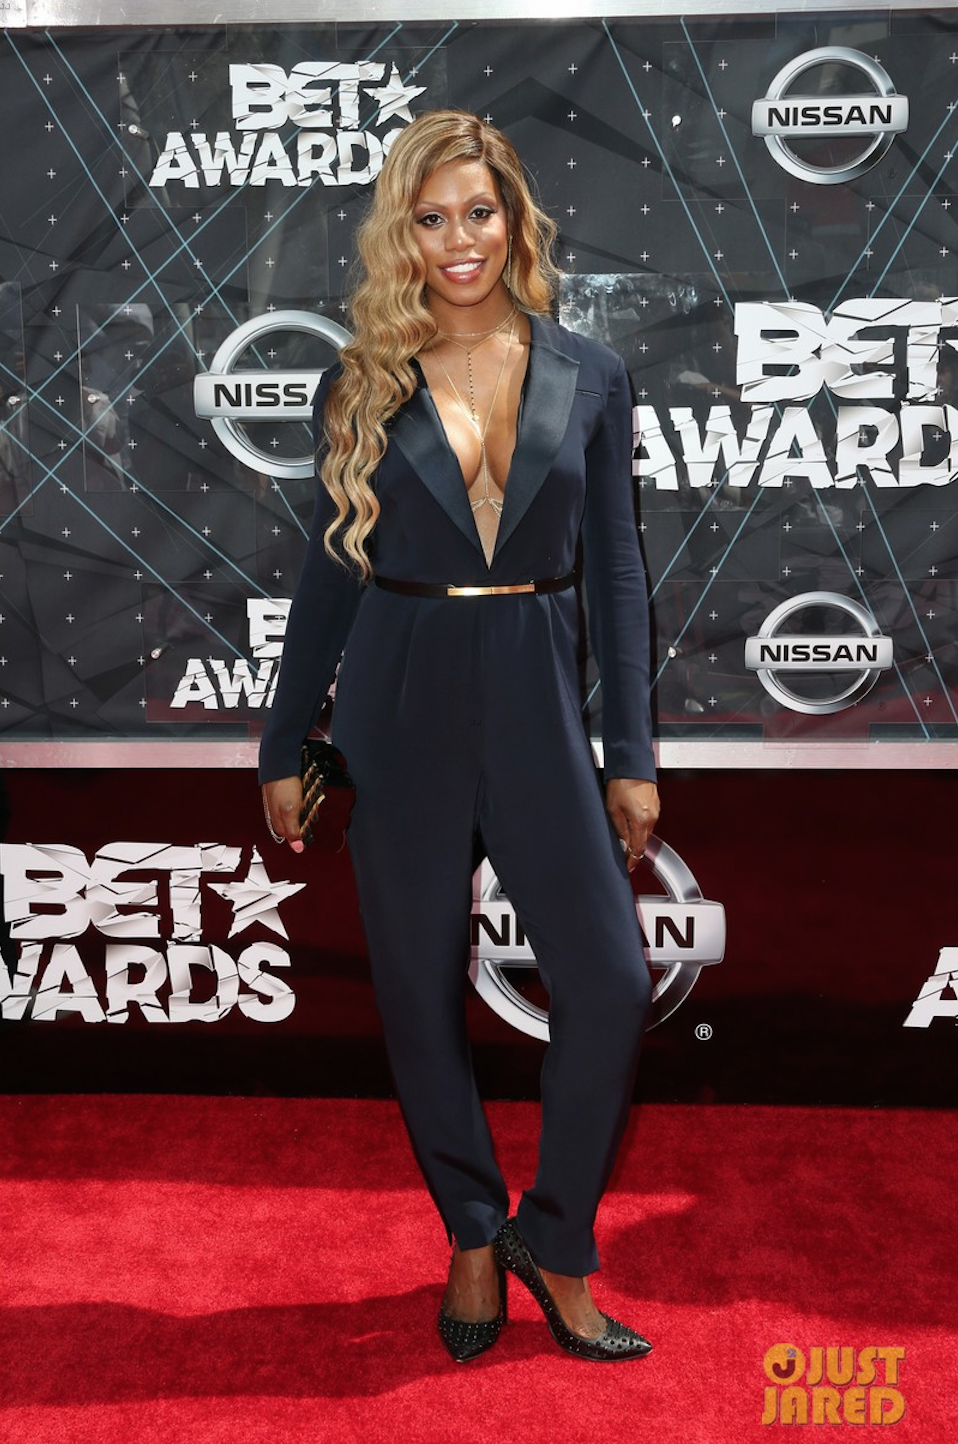 Laverne Cox BET Awards 2015 Red Carpet